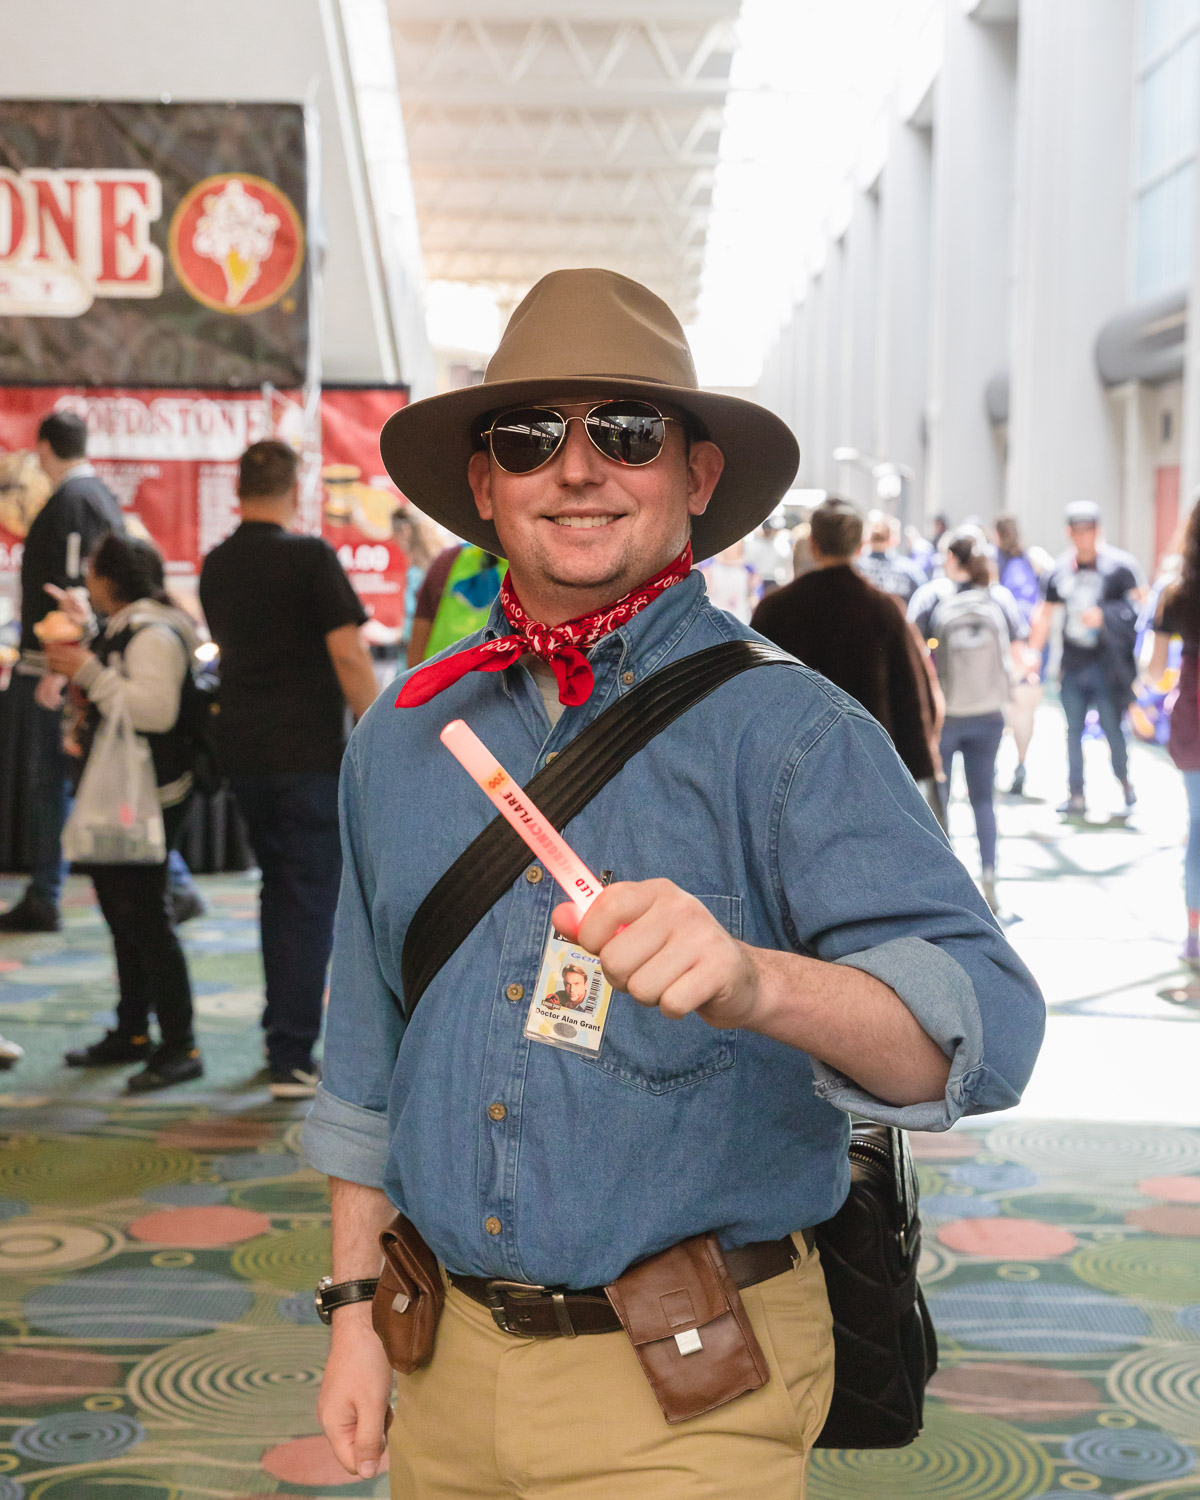 Ashton Norton, cosplaying as the jurassic wonder, Dr. Alan Grant. Photo: @Lmsorenson